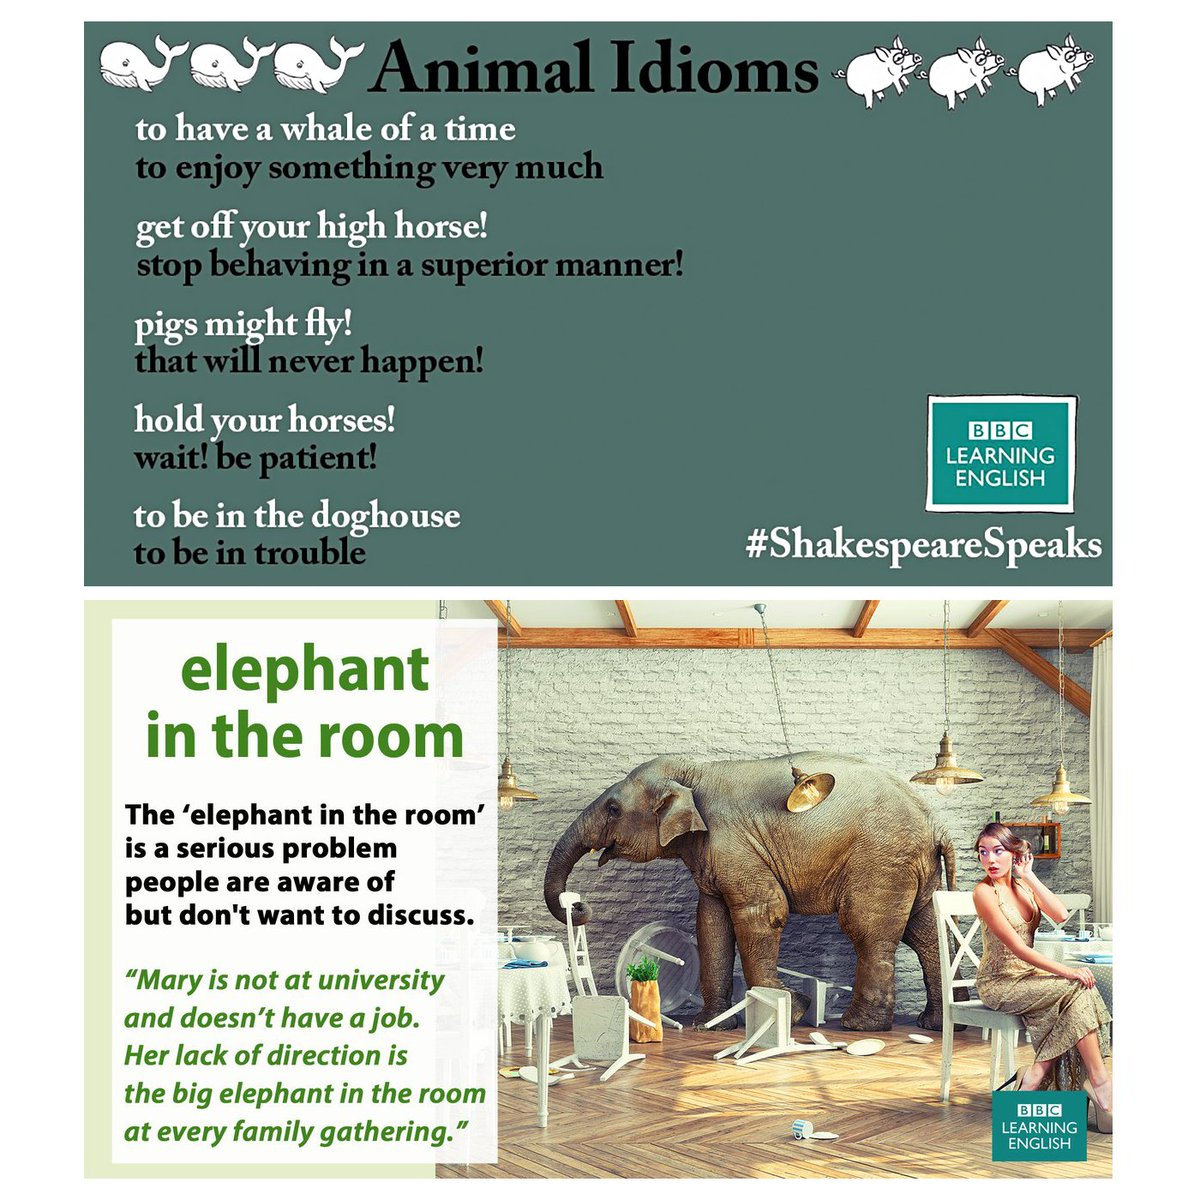 Here are some cool animal #idioms   via @bbcle<br>http://pic.twitter.com/x6n8zpt1Ew